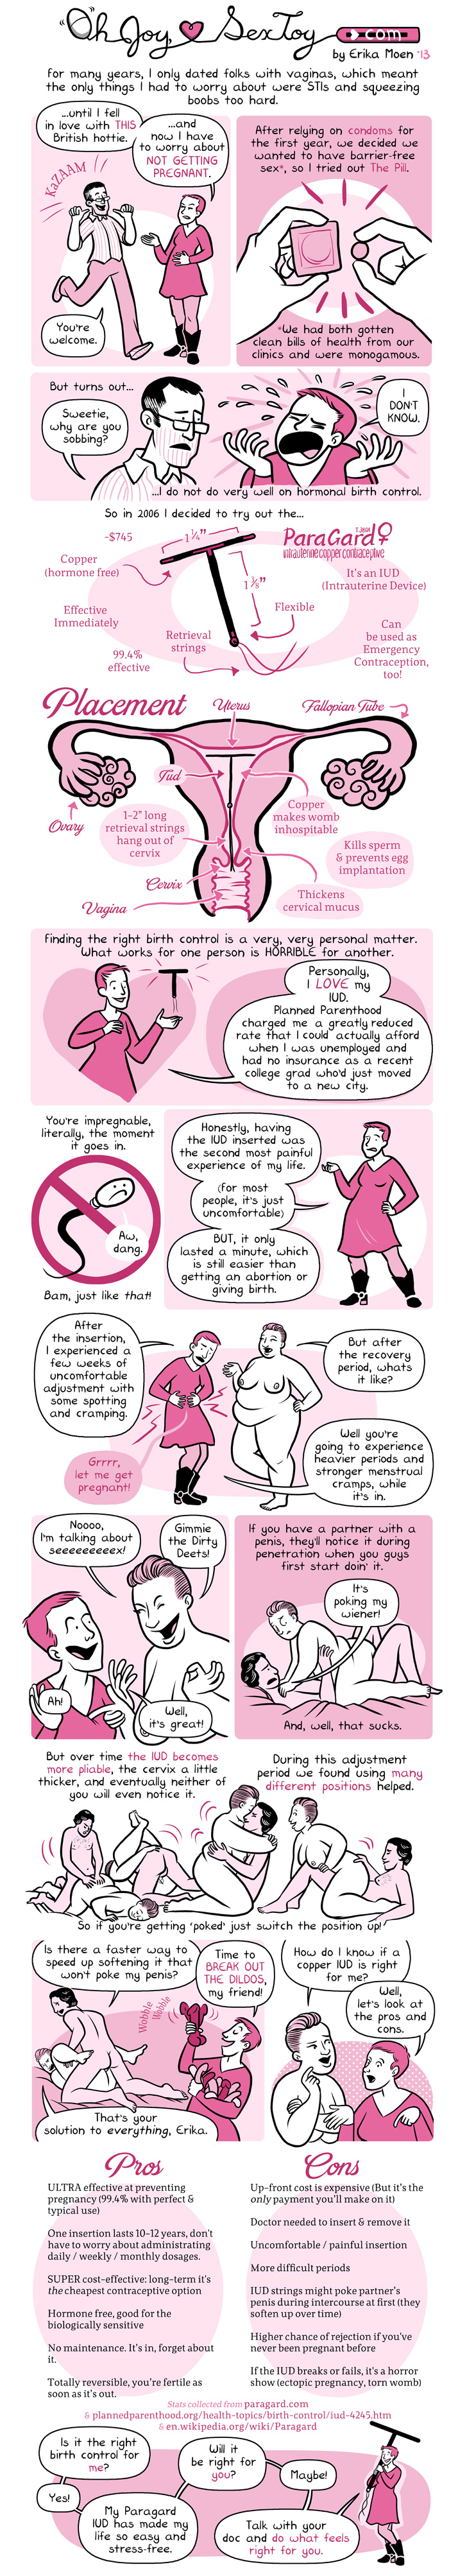 A comic by Erika Moen about getting a copper IUD